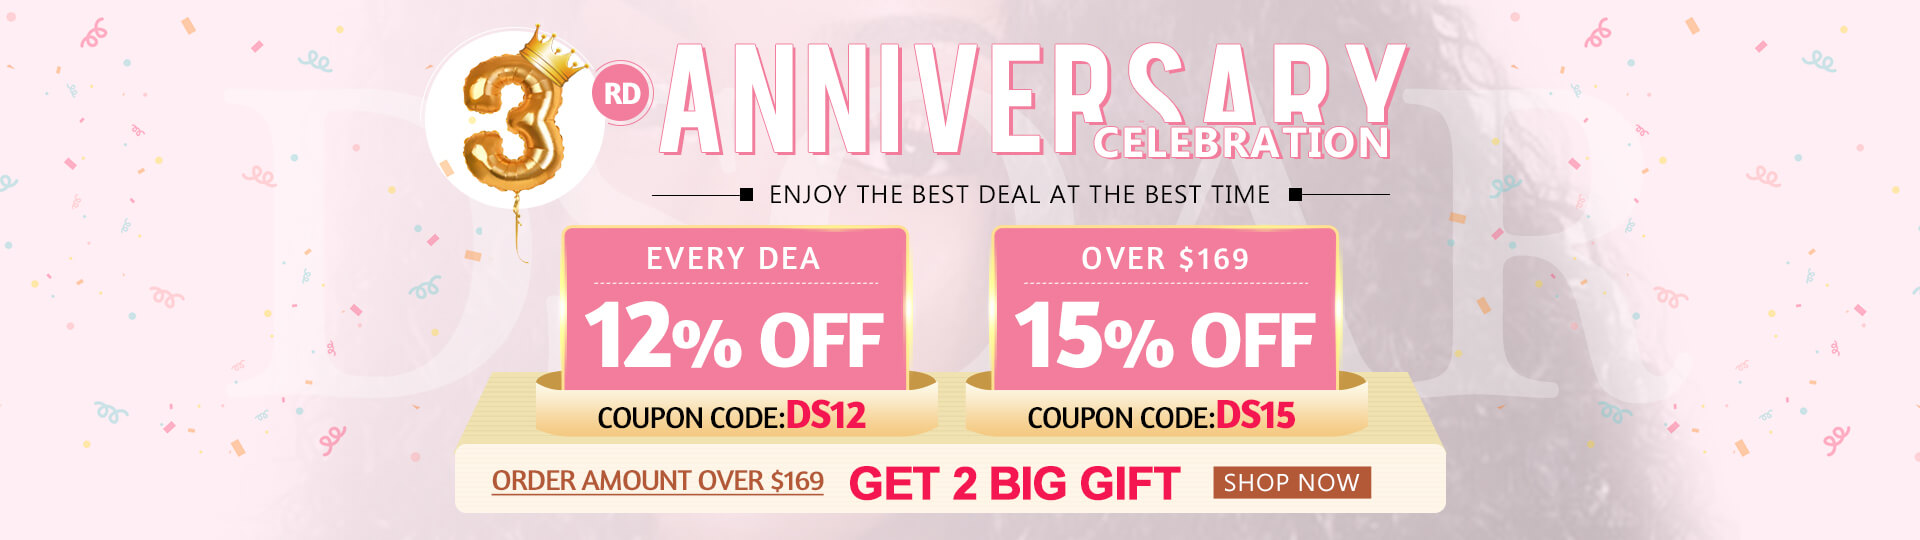 2019 DSoar 3rd Anniversary Celebration Sale:Up to 15% OFF